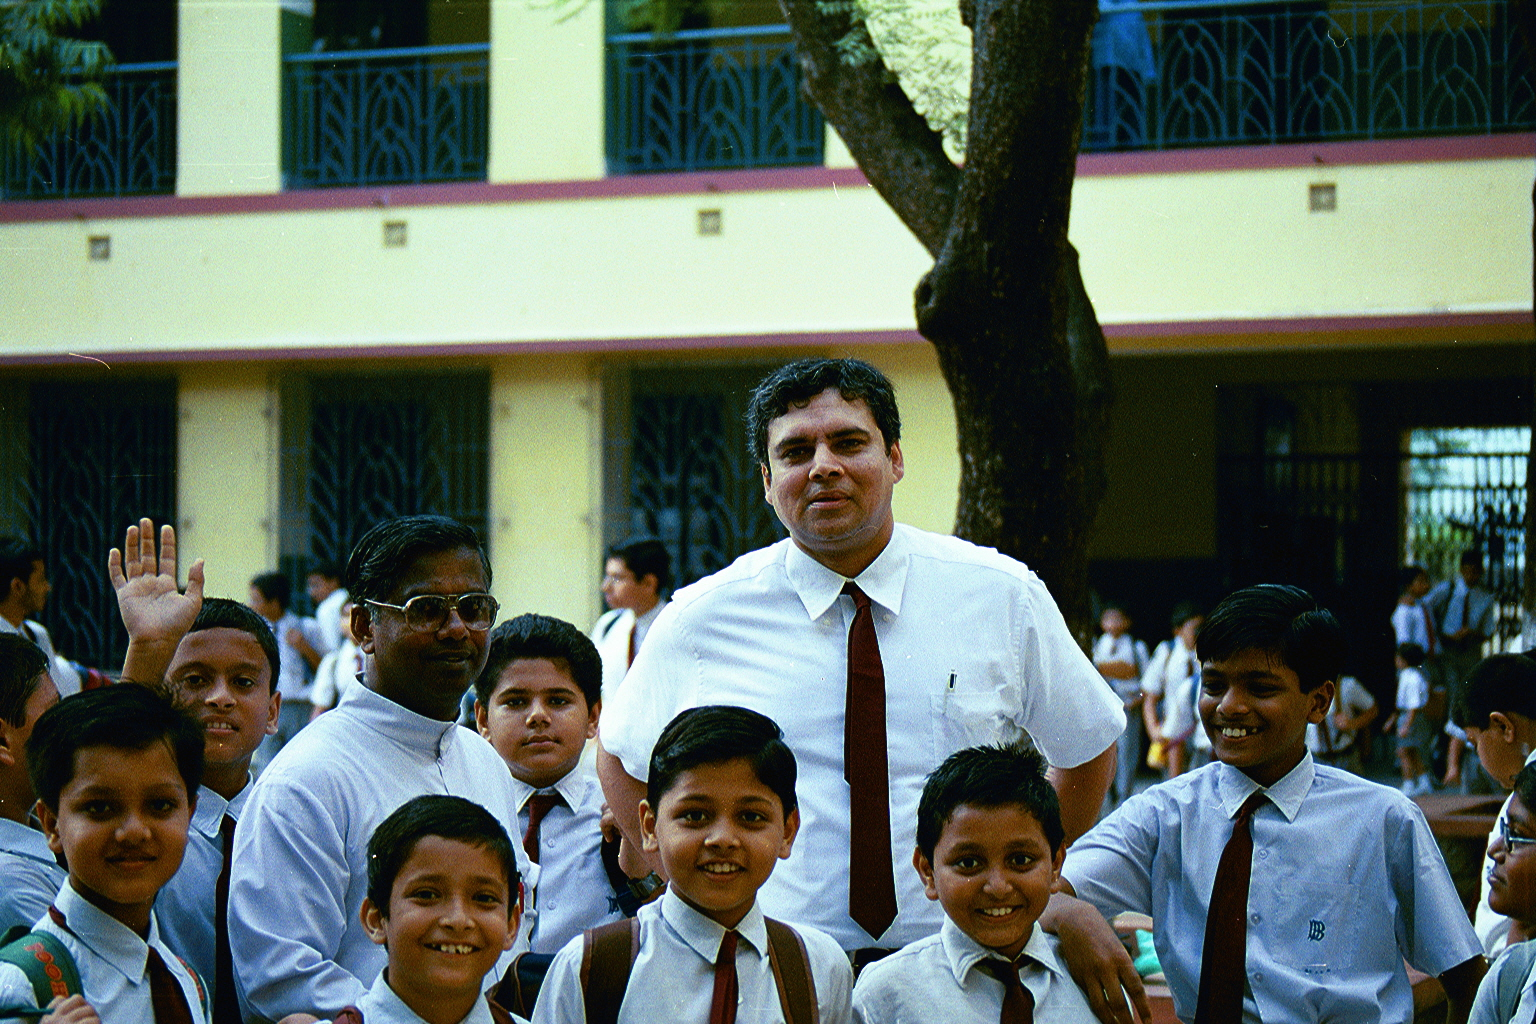 CLICK TO ENLARGE - Myself with Brother Albert & the students.